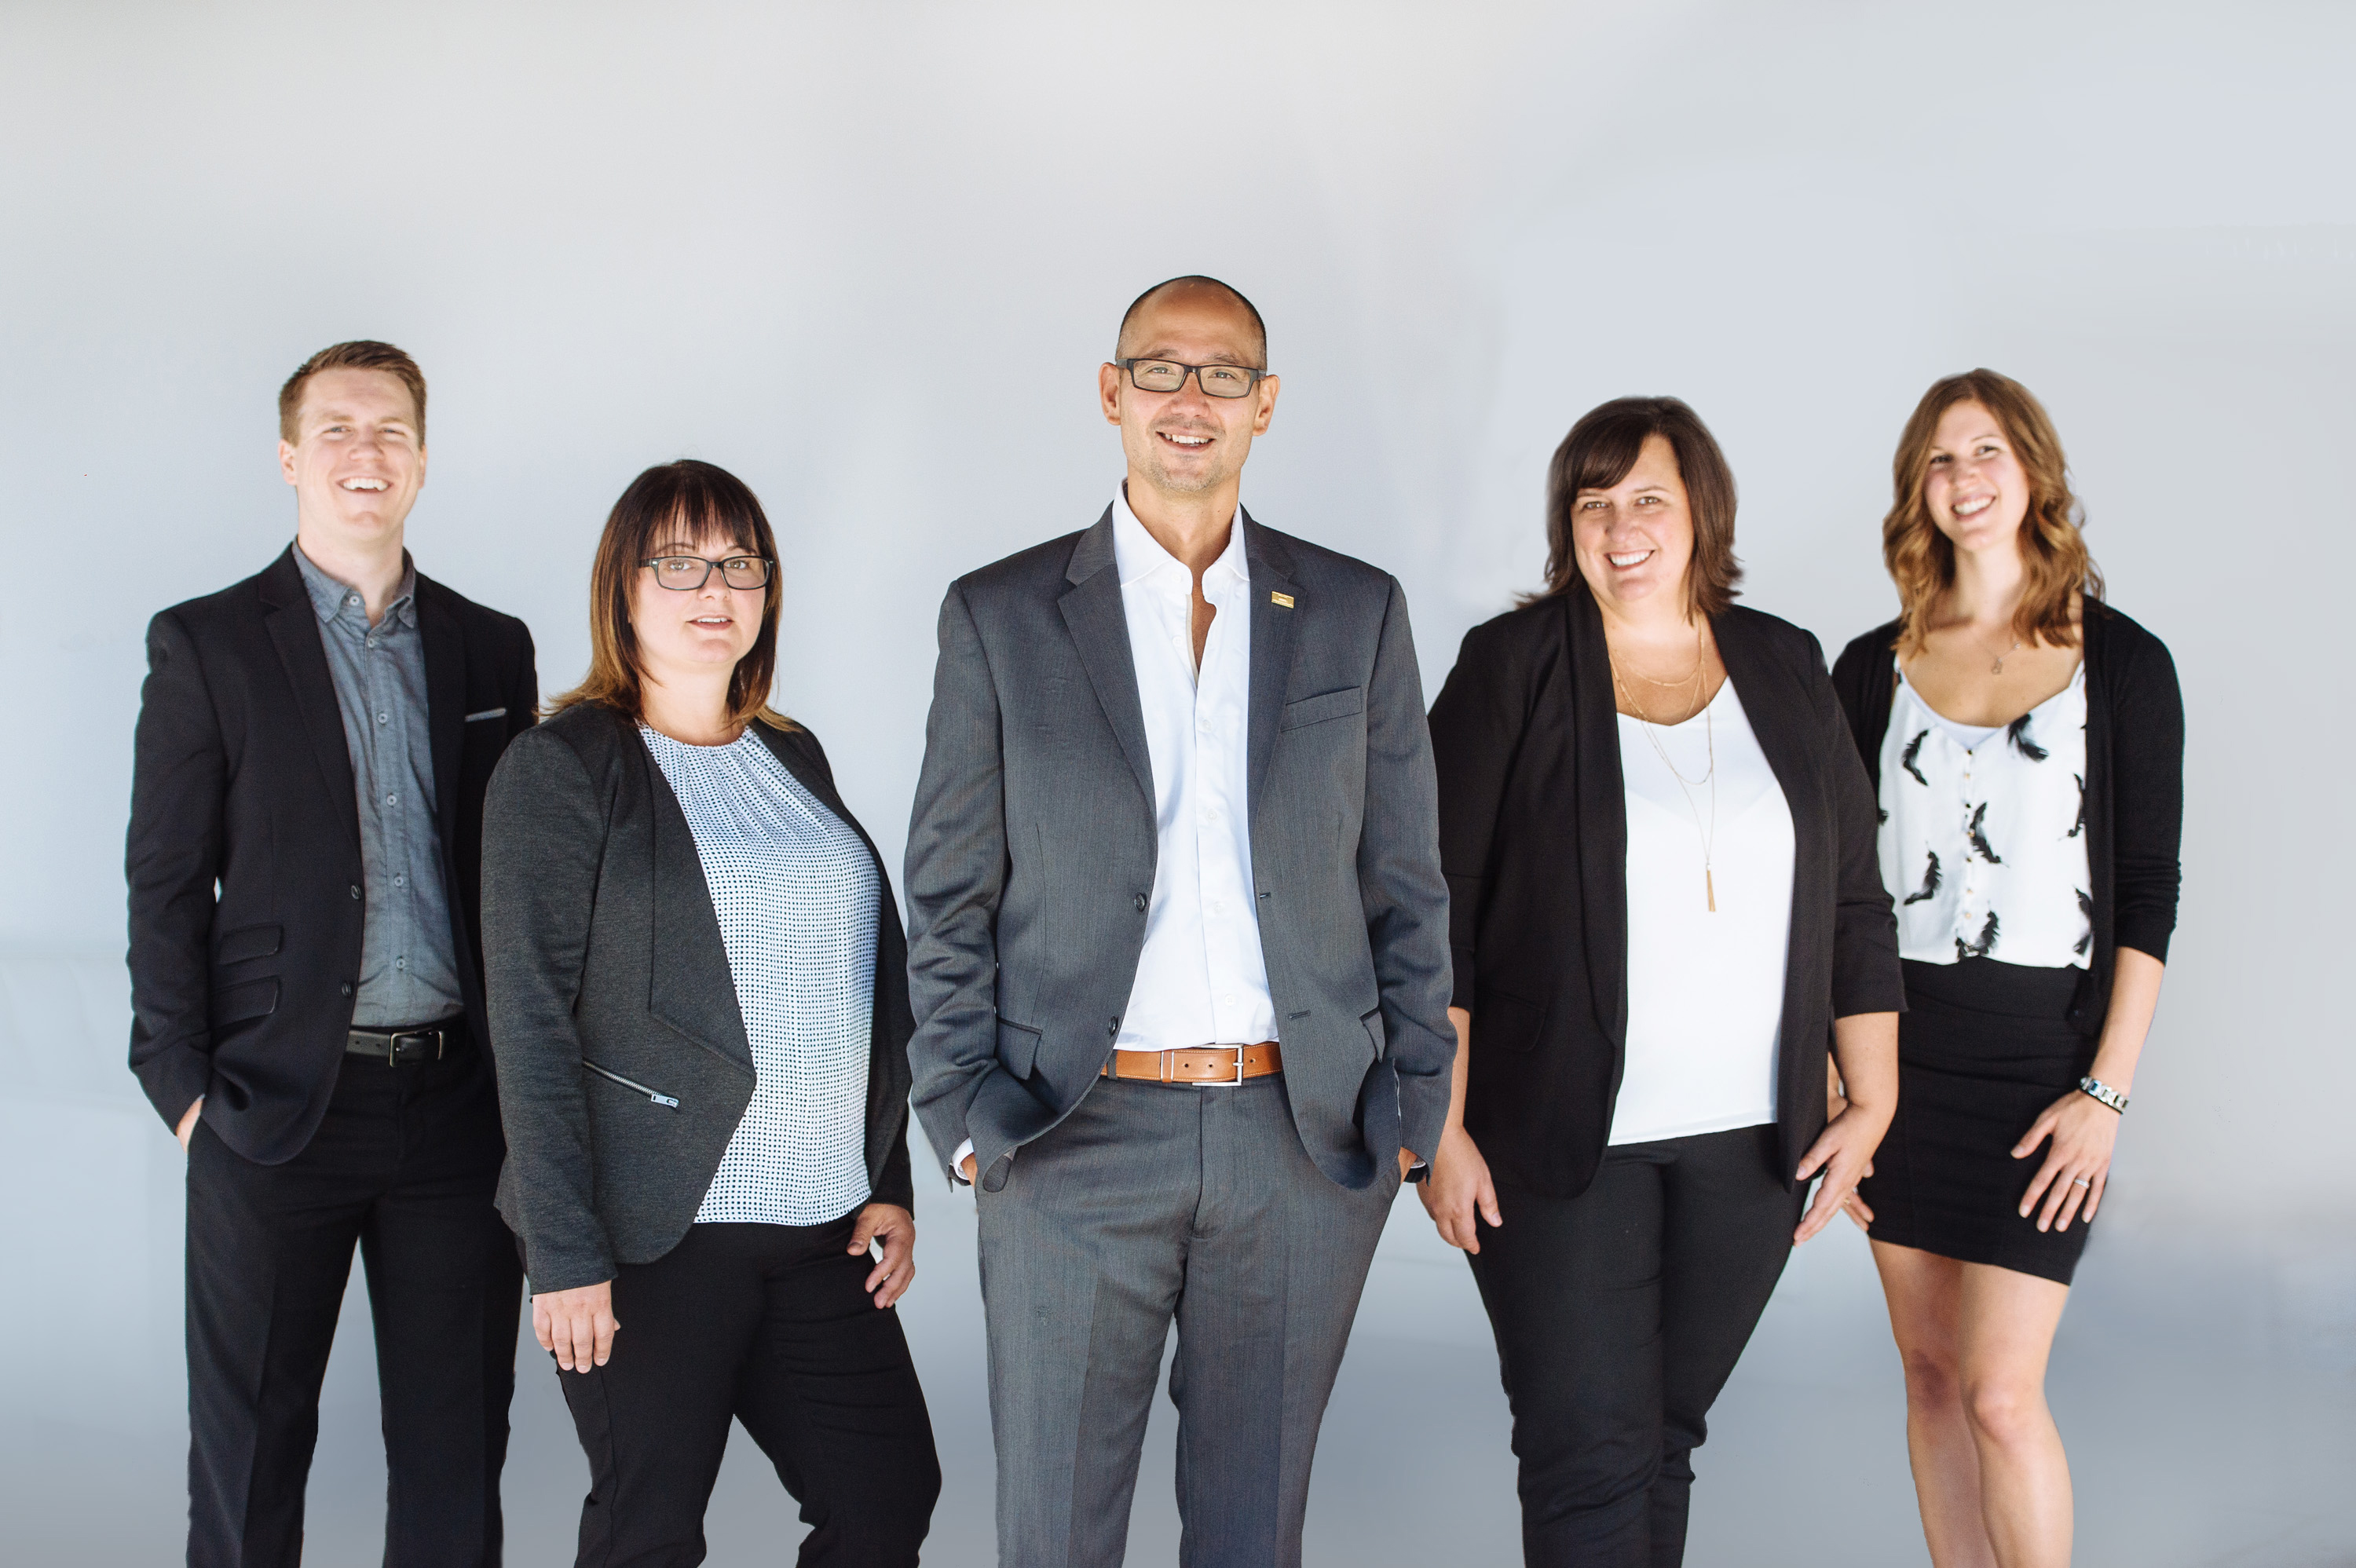 Mortgage Broker Team